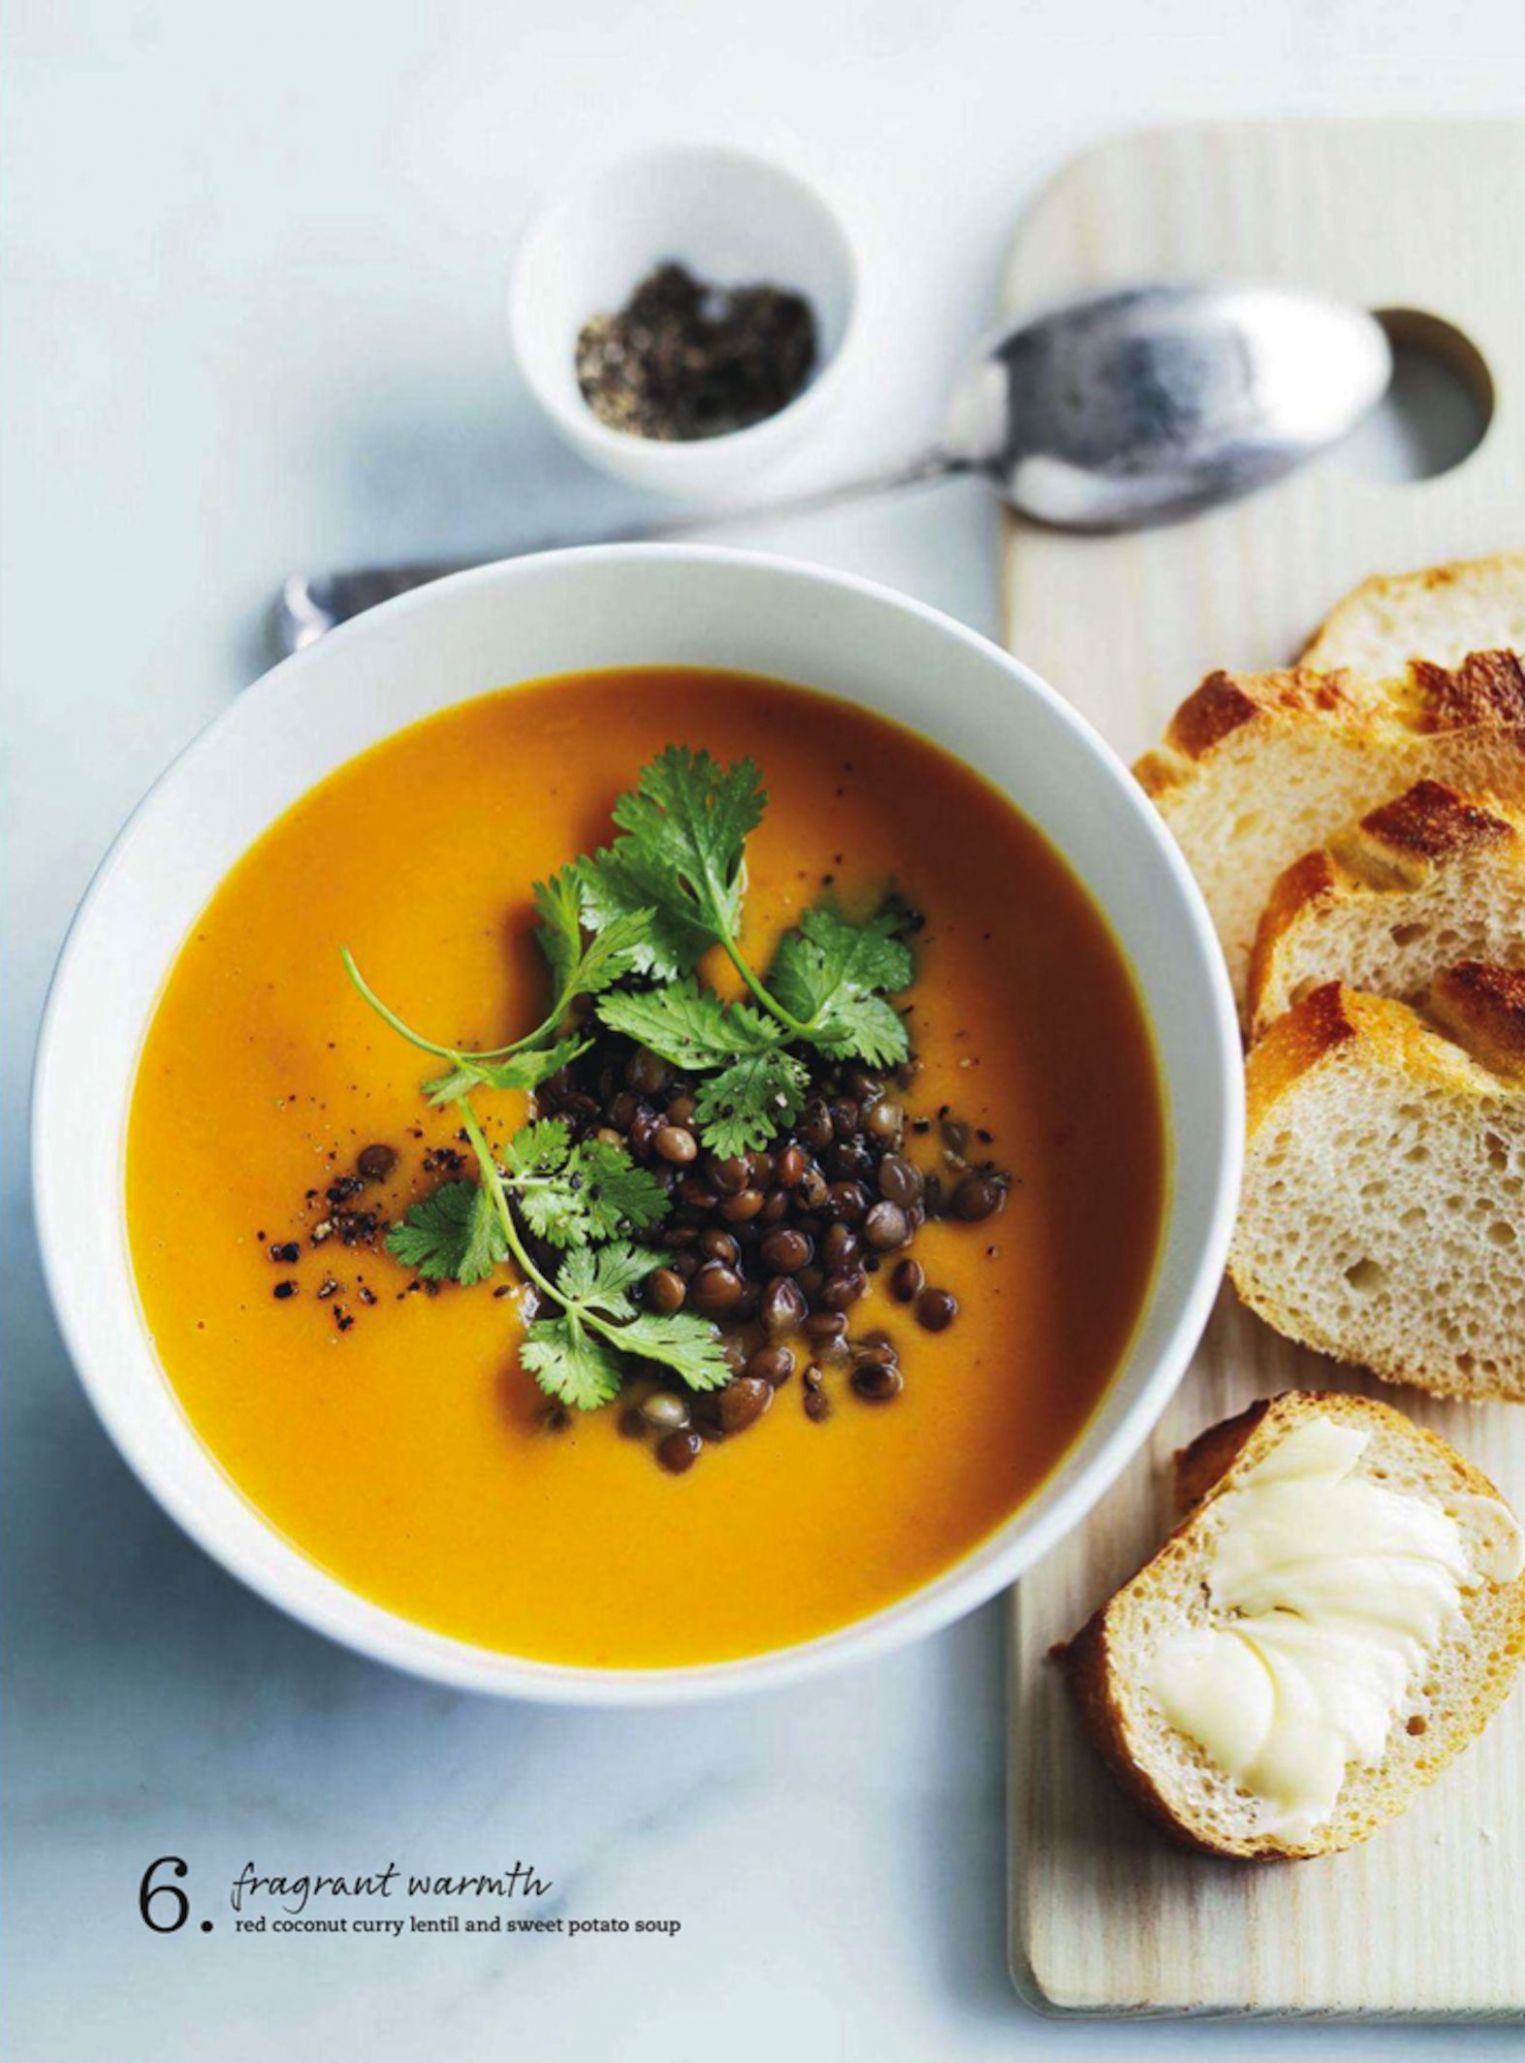 Red Coconut Curry Lentil & Sweet Potato Soup - Soup Recipes Donna Hay